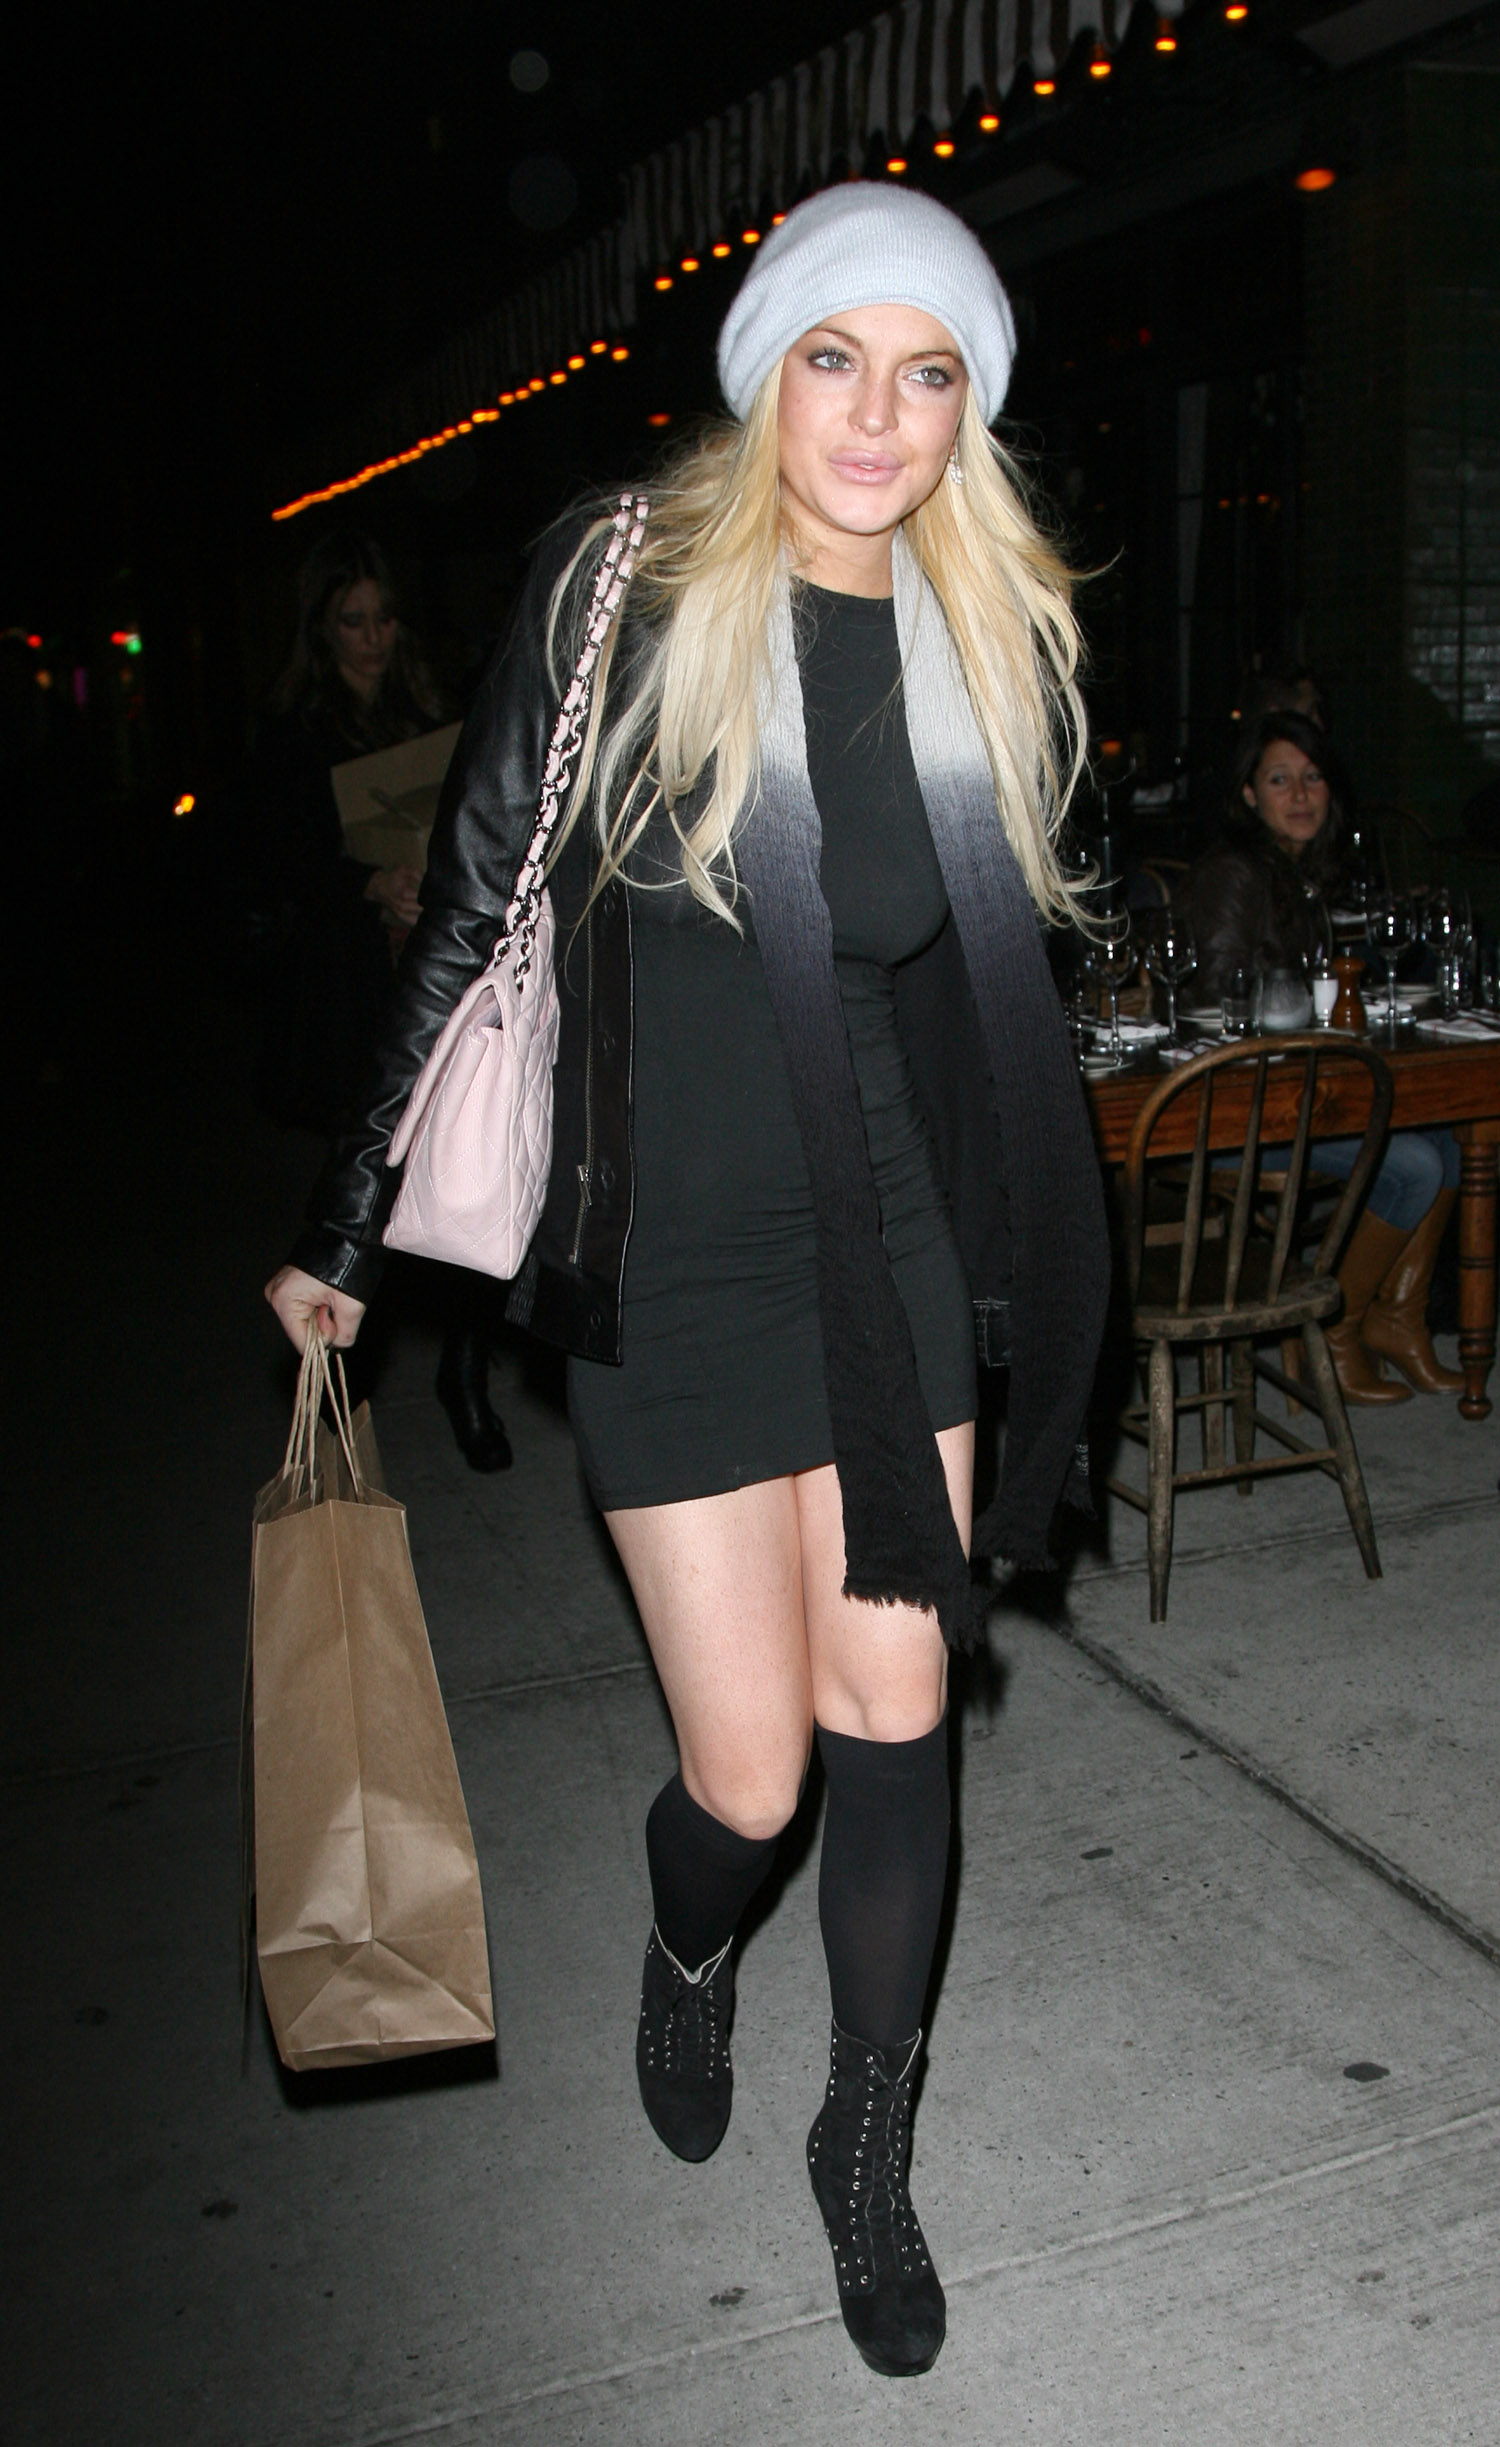 67464_Lindsay_Lohan_out_to_dinner_in_New_York_City-7_122_527lo.jpg